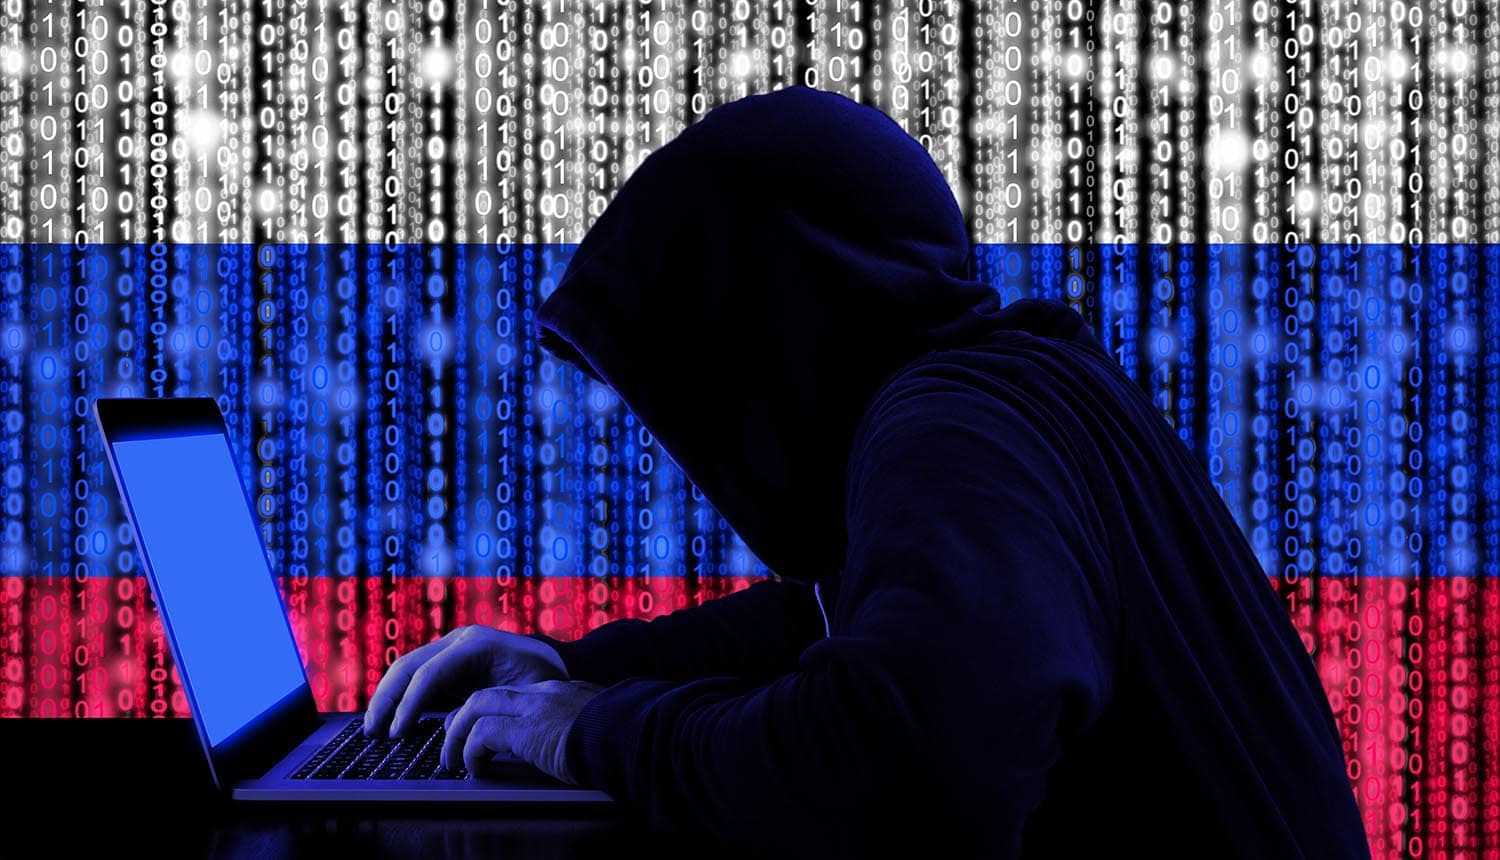 Russian hackers in a dark hoody sitting in front of a notebook with digital Russian flag and binary streams background showing cybersecurity advisory warning